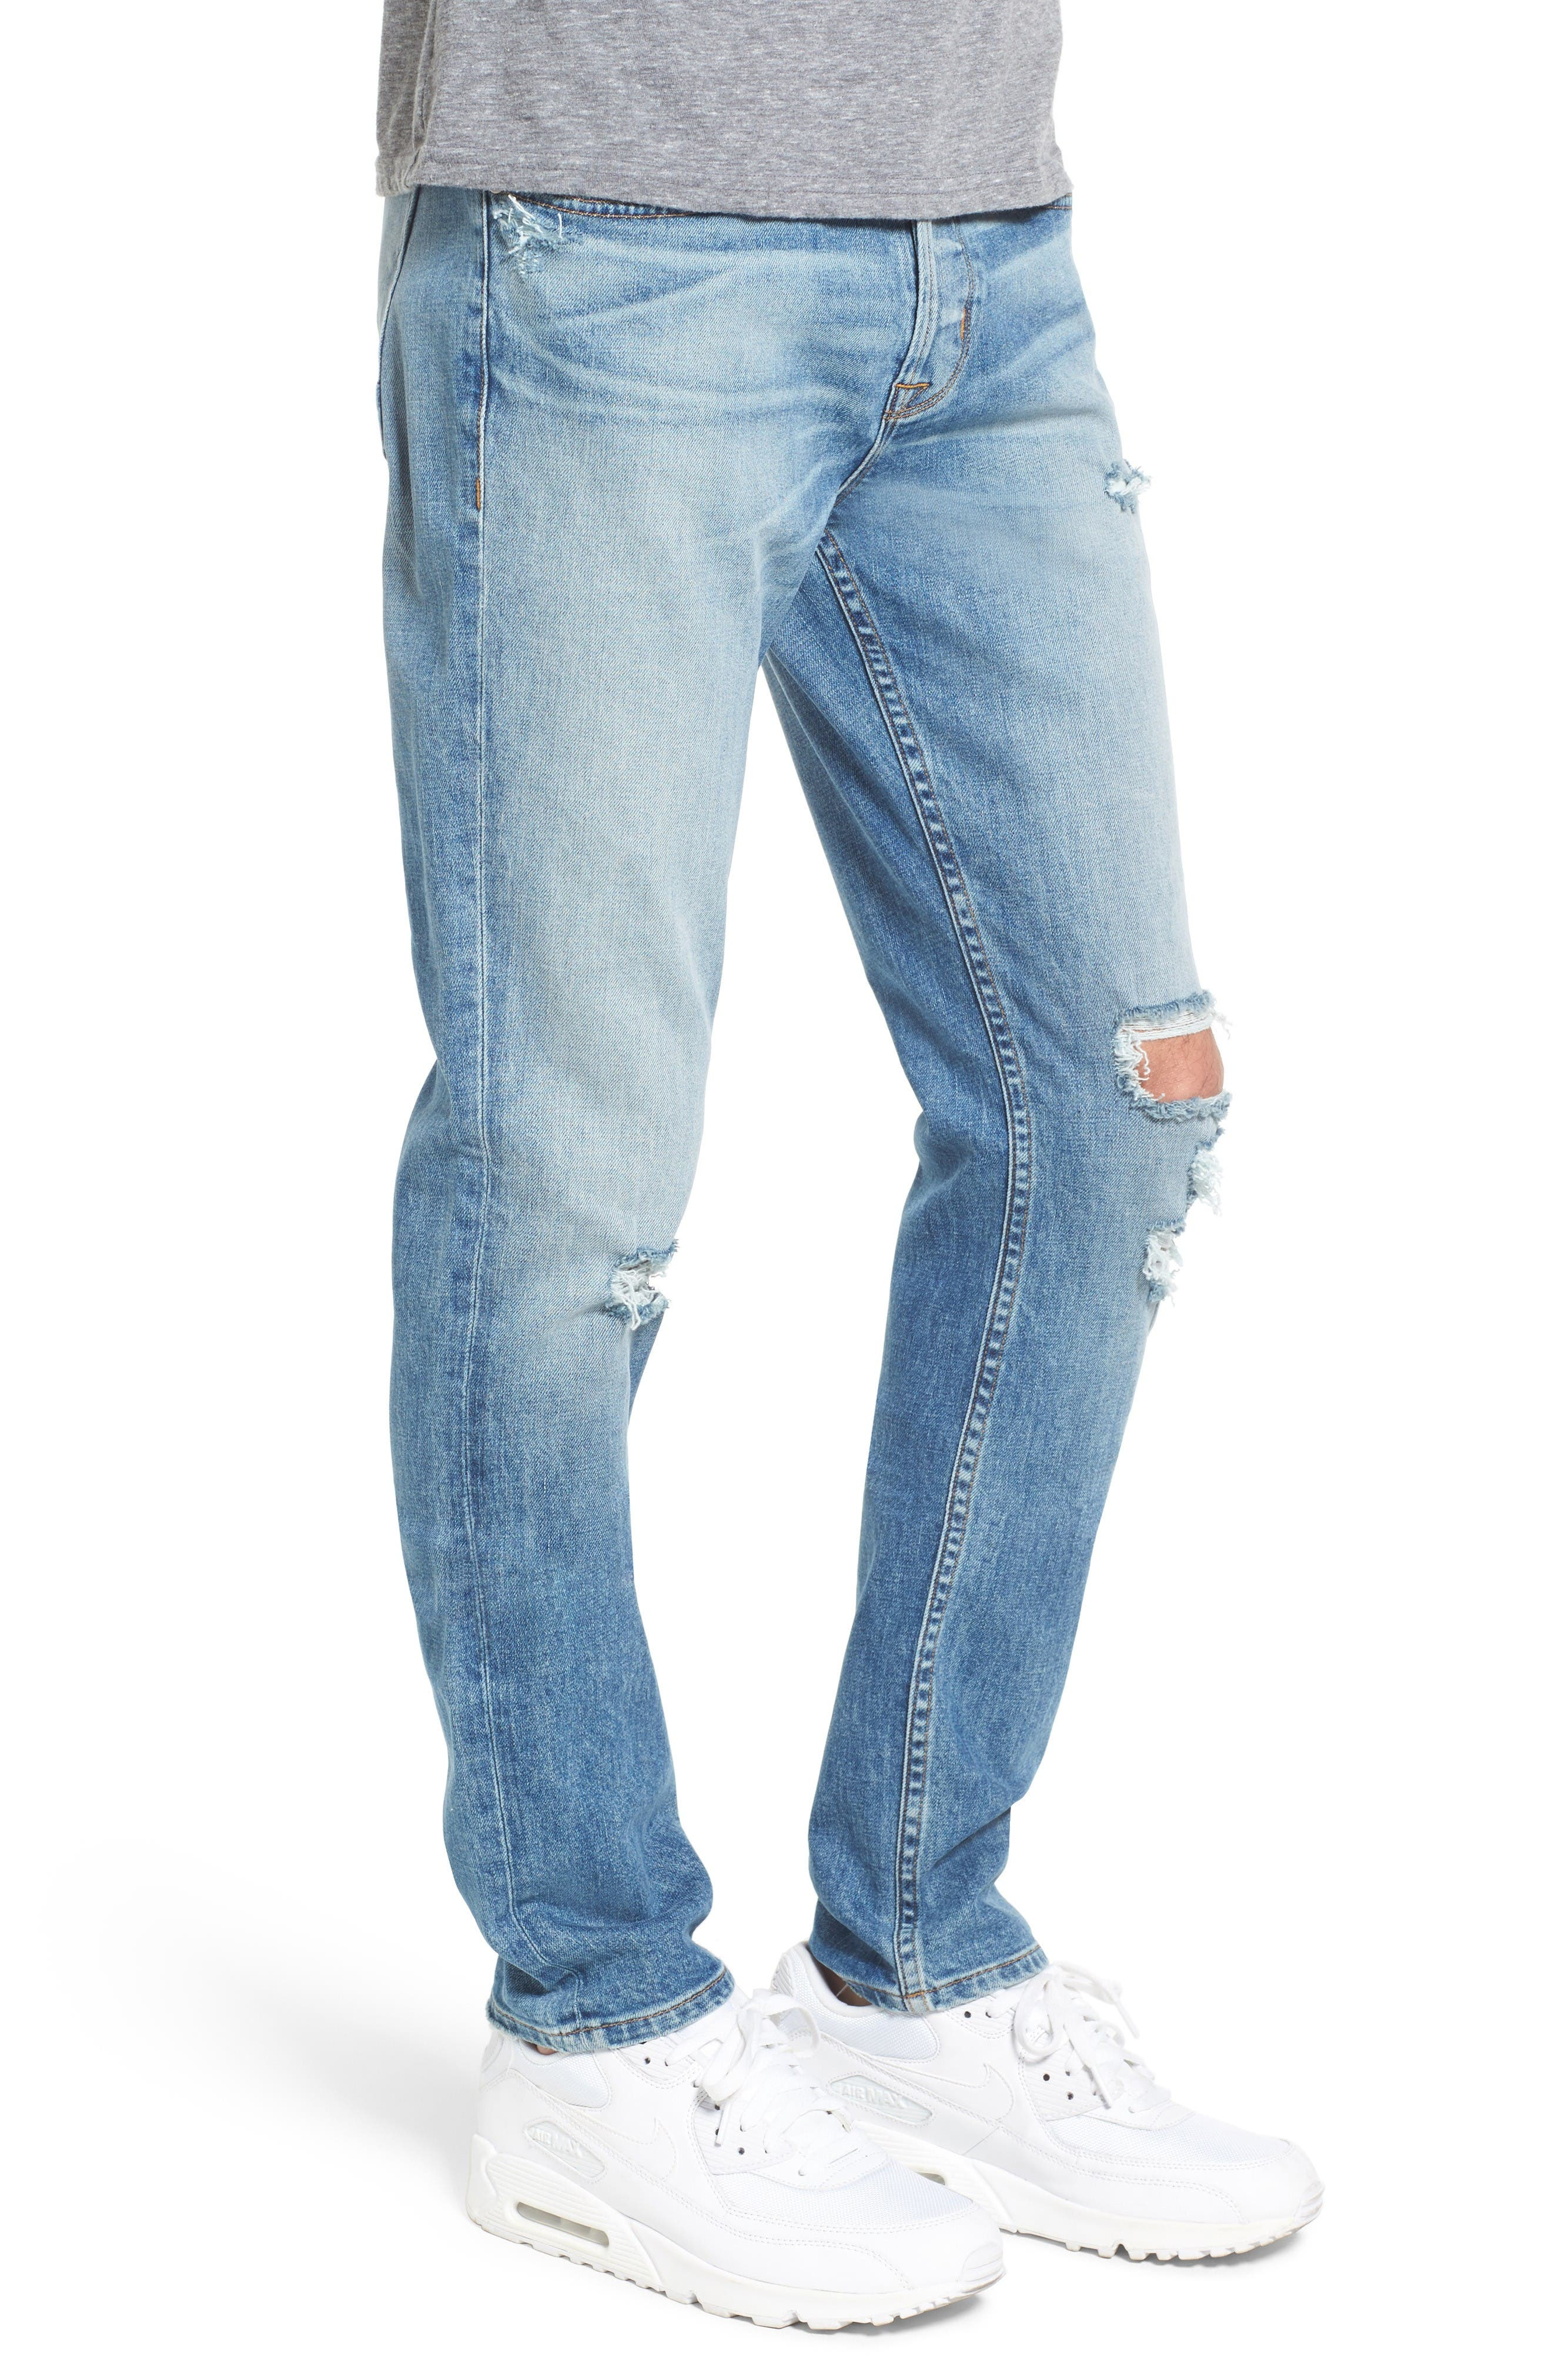 Sator Skinny Fit Jeans,                             Alternate thumbnail 3, color,                             Banned